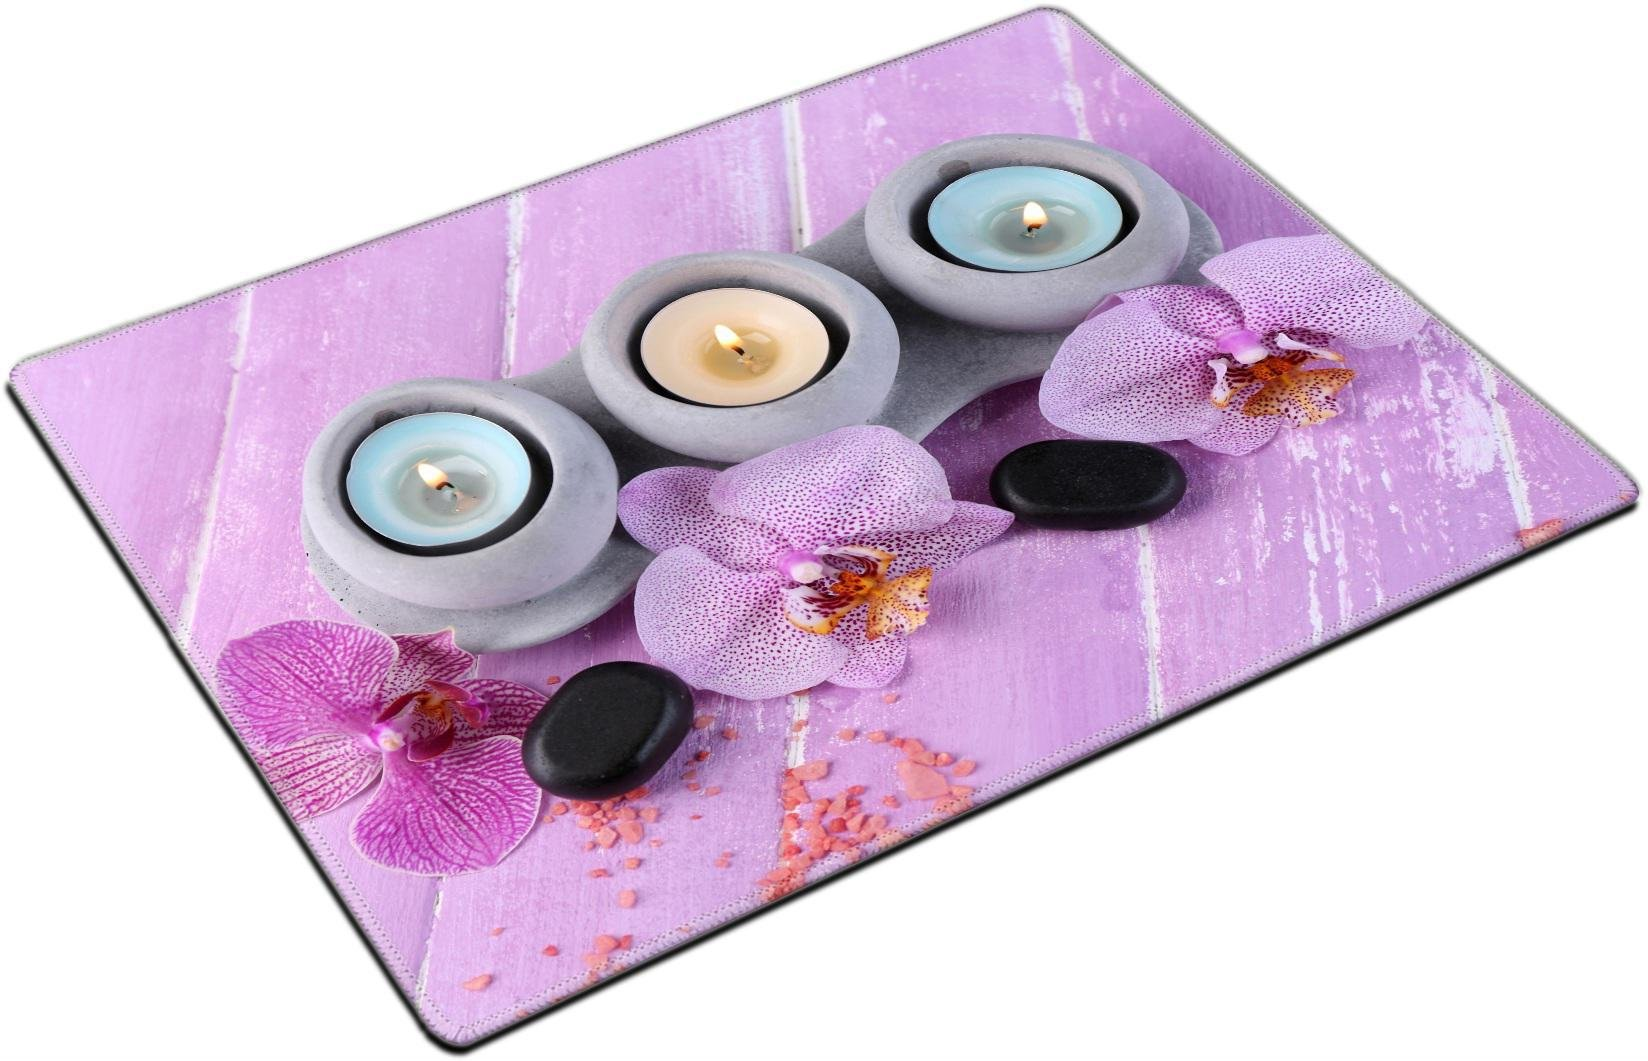 MSD Place Mat Non-Slip Natural Rubber Desk Pads Design: 35235689 Orchid Flowers Spa Stones and sea Salt on Color Wooden Background